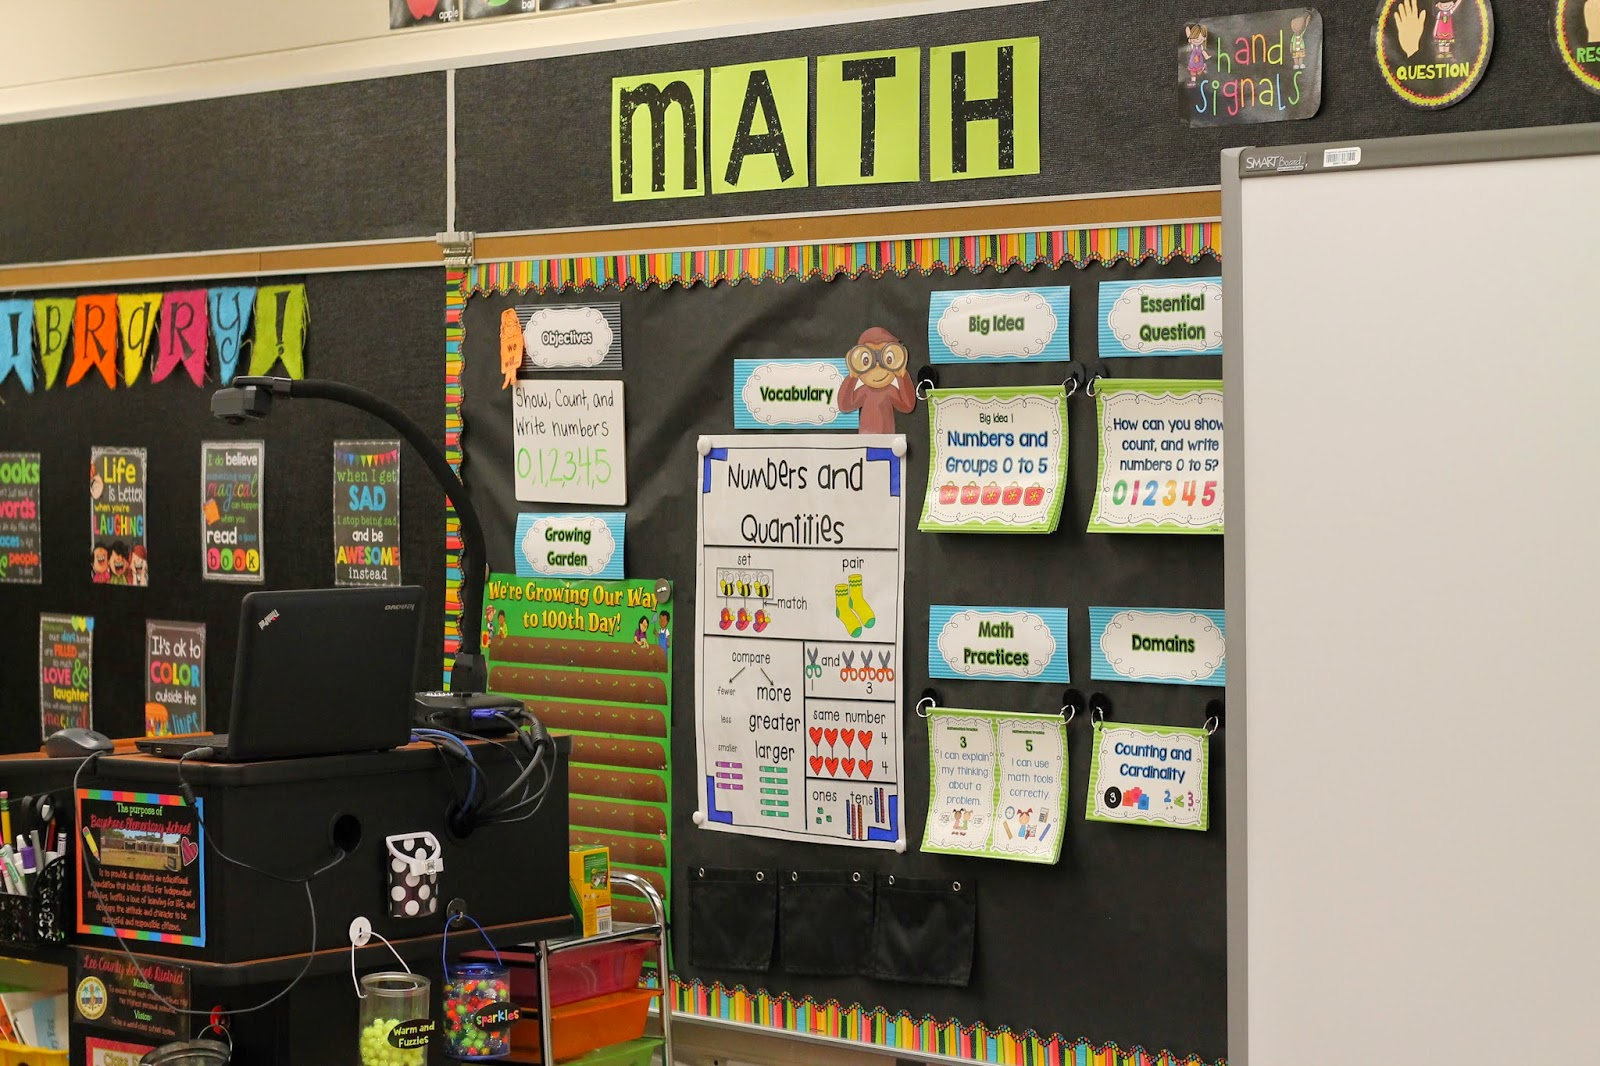 math worksheet : second grade math focus wall  the best and most comprehensive  : Math In Focus Worksheets